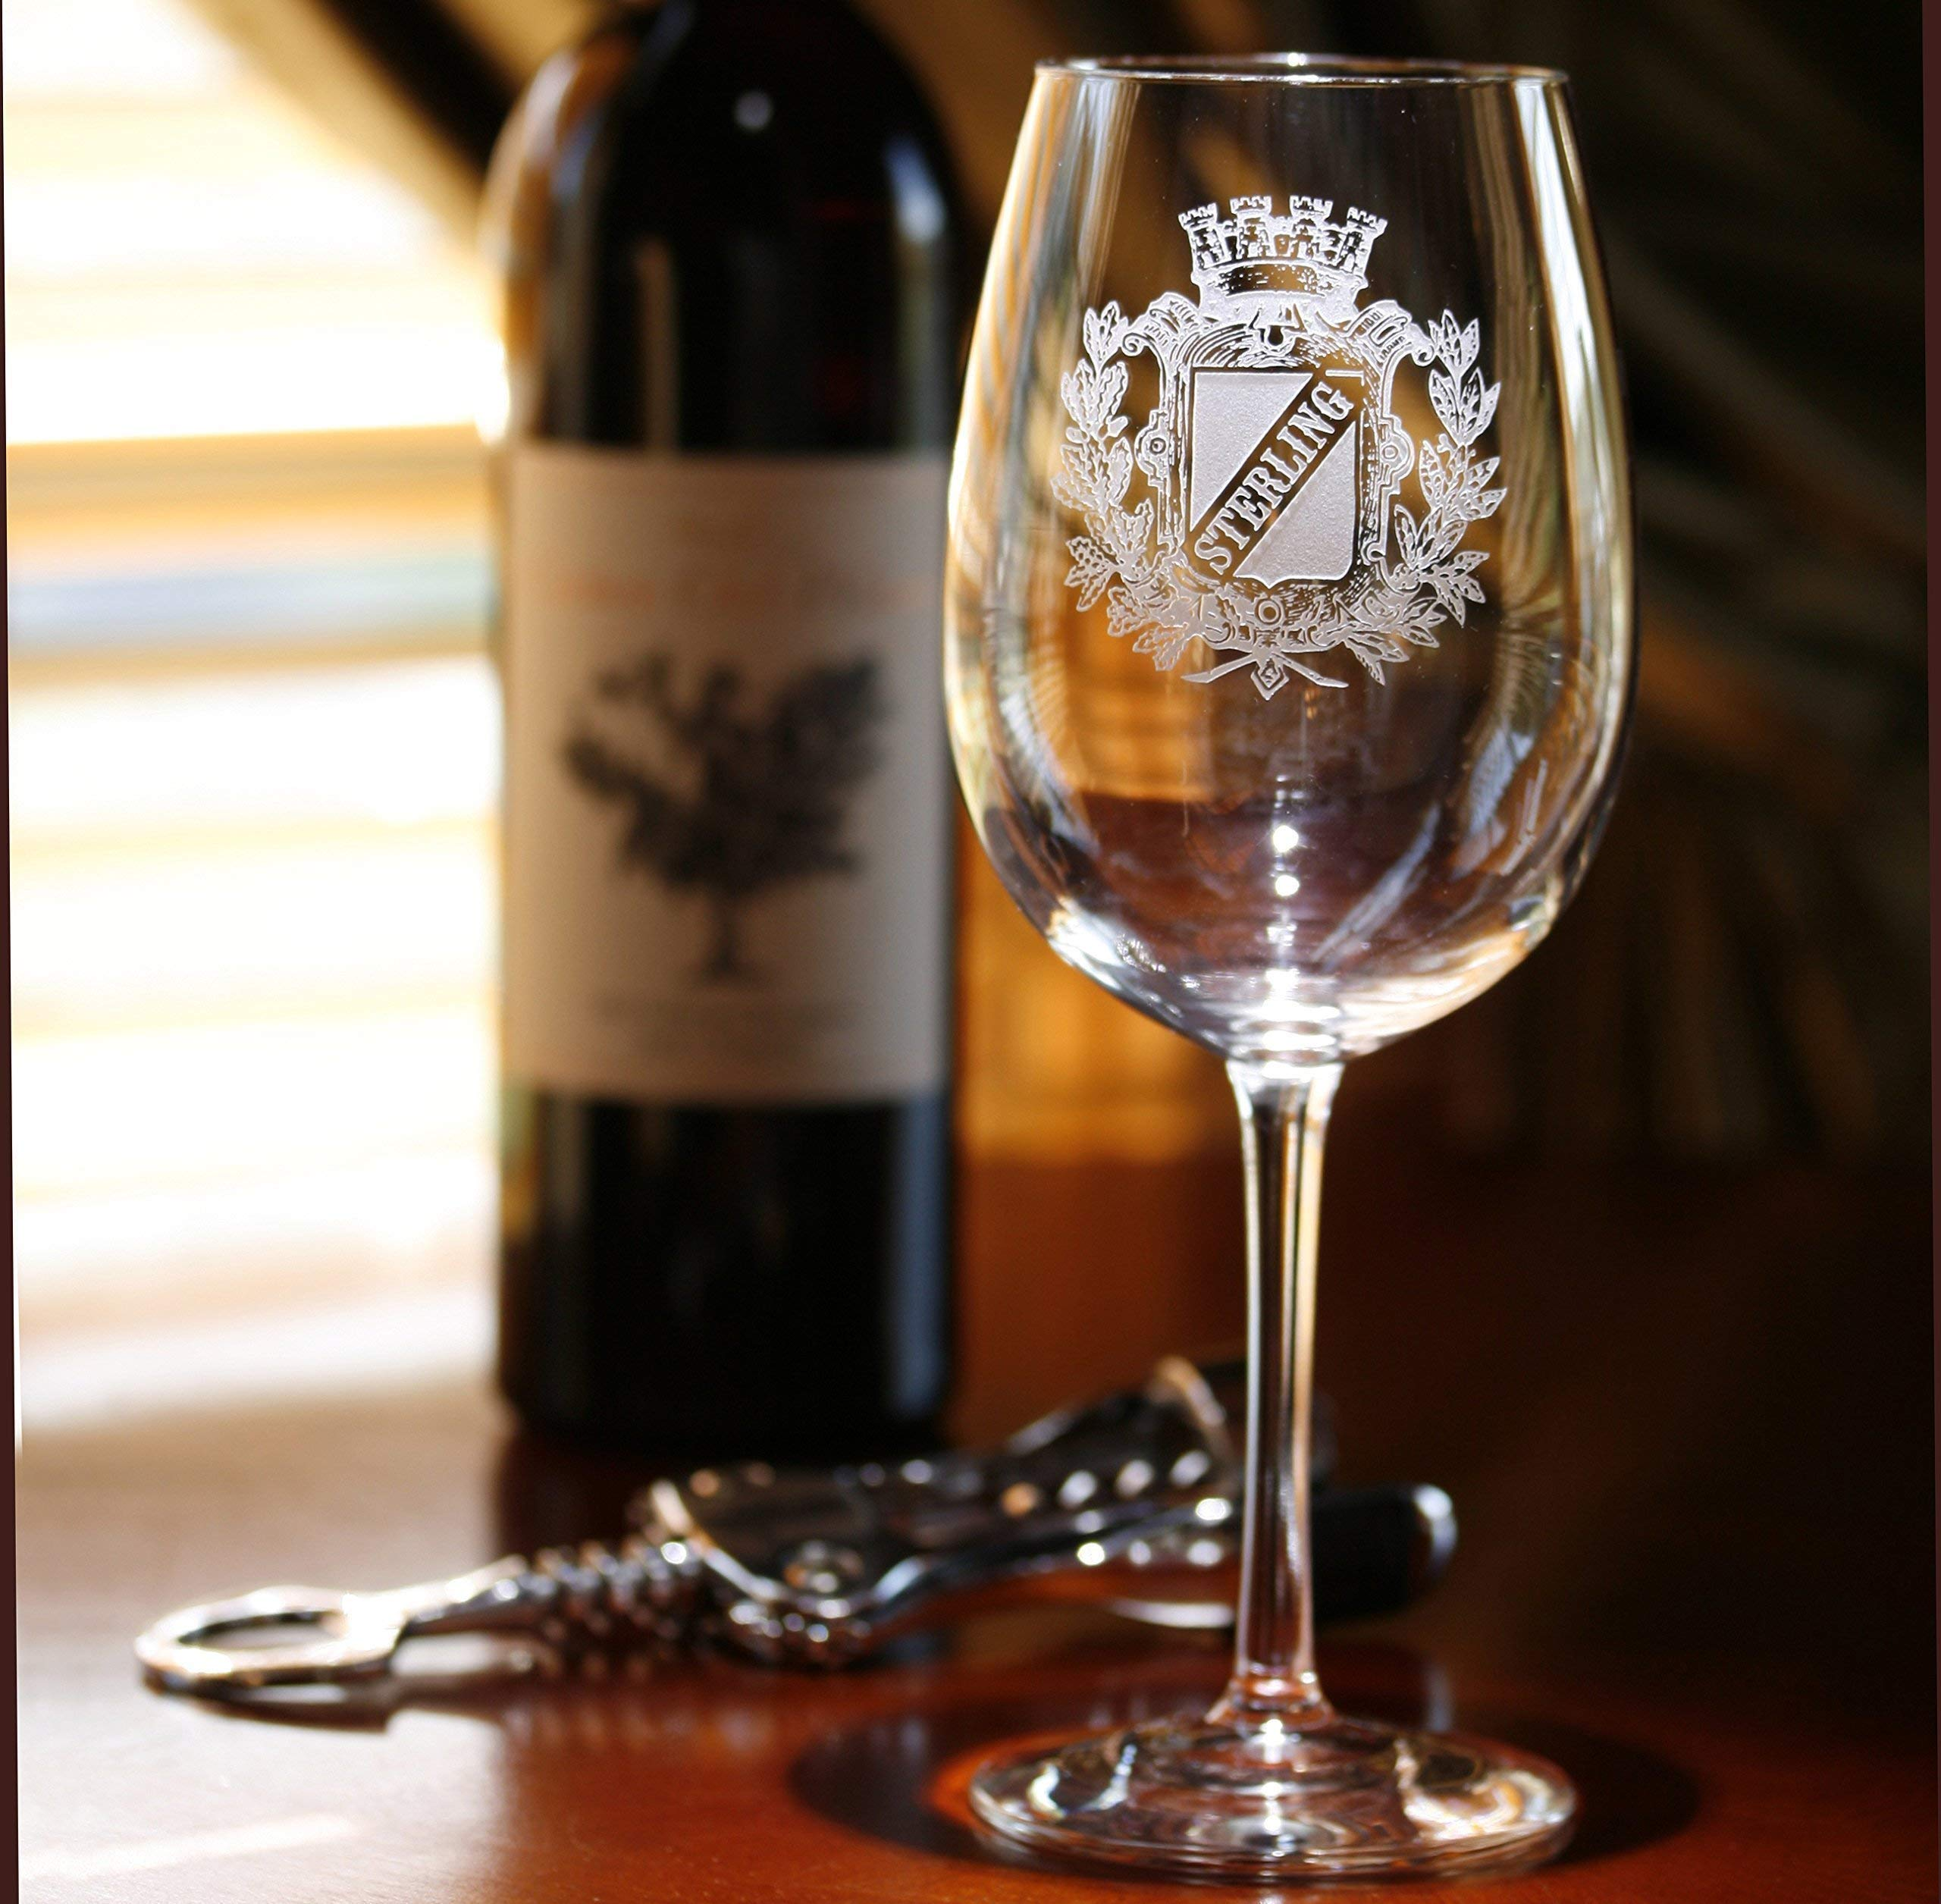 Personalized Family Crest Wine Glass, Engraved Coat of Arms Wine Glasses - Set of 4 (crest)